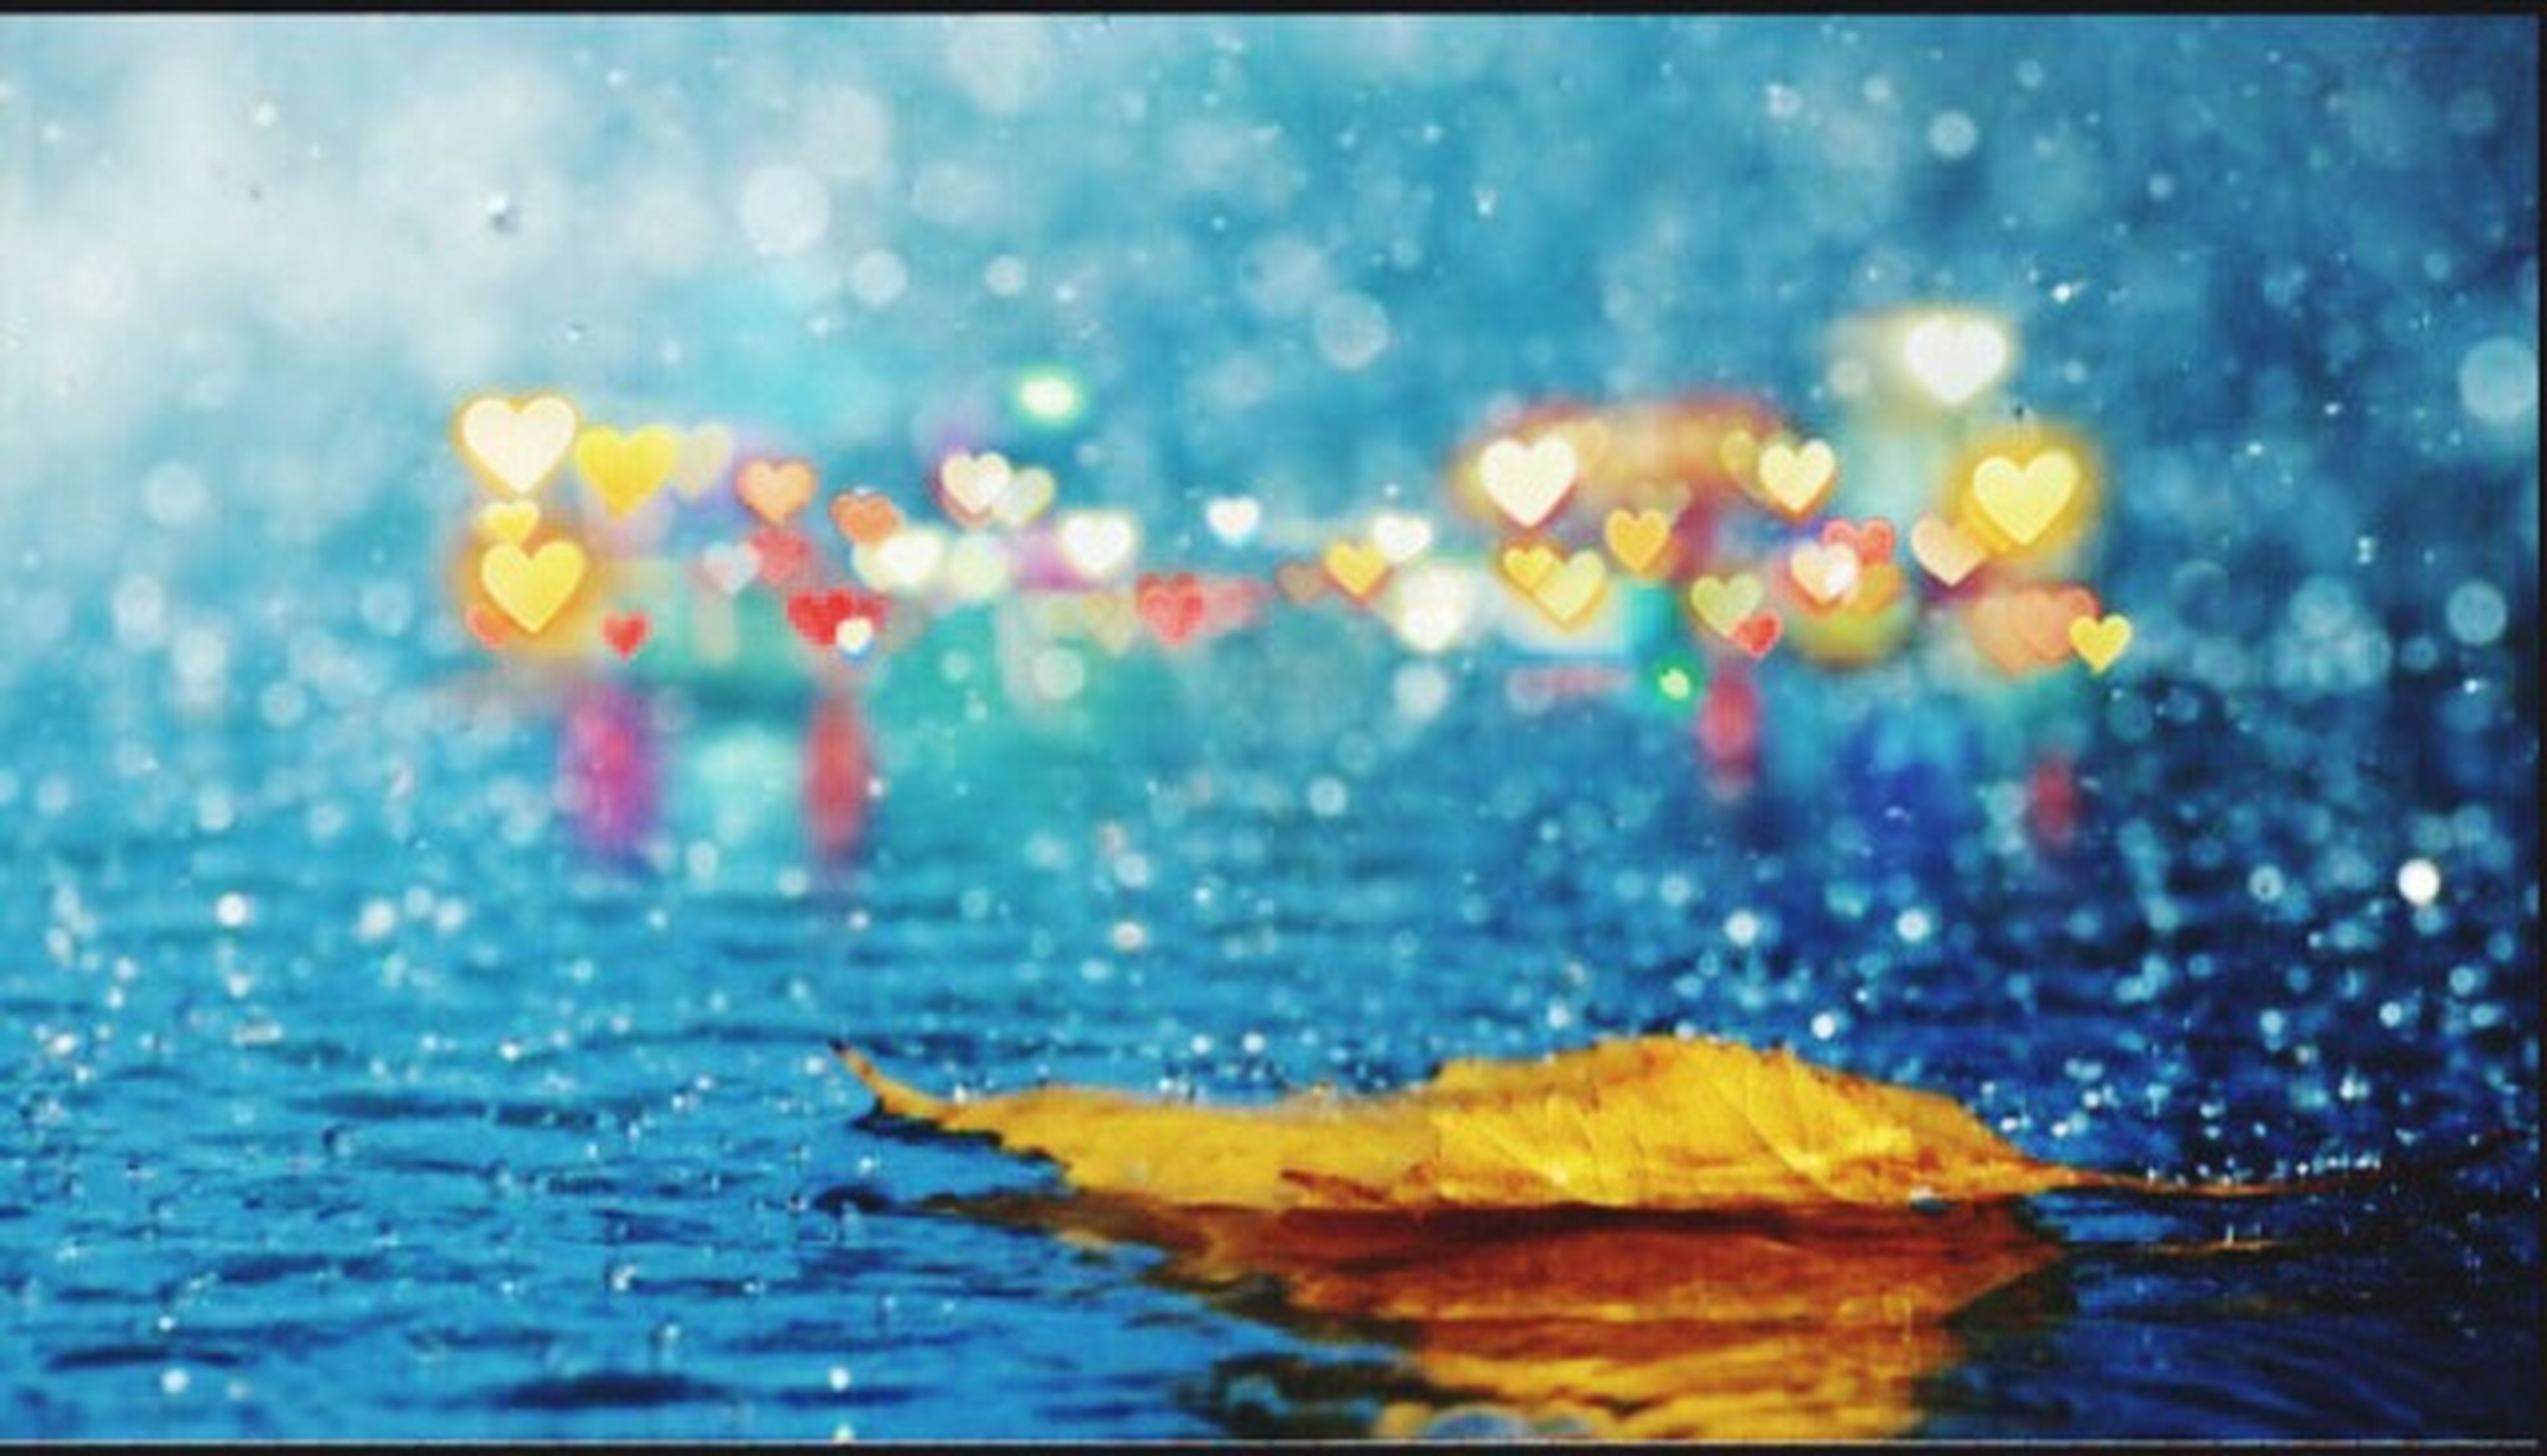 water, autumn, waterfront, close-up, wet, fragility, multi colored, selective focus, nature, reflection, yellow, season, focus on foreground, orange color, auto post production filter, beauty in nature, change, no people, drop, floating on water